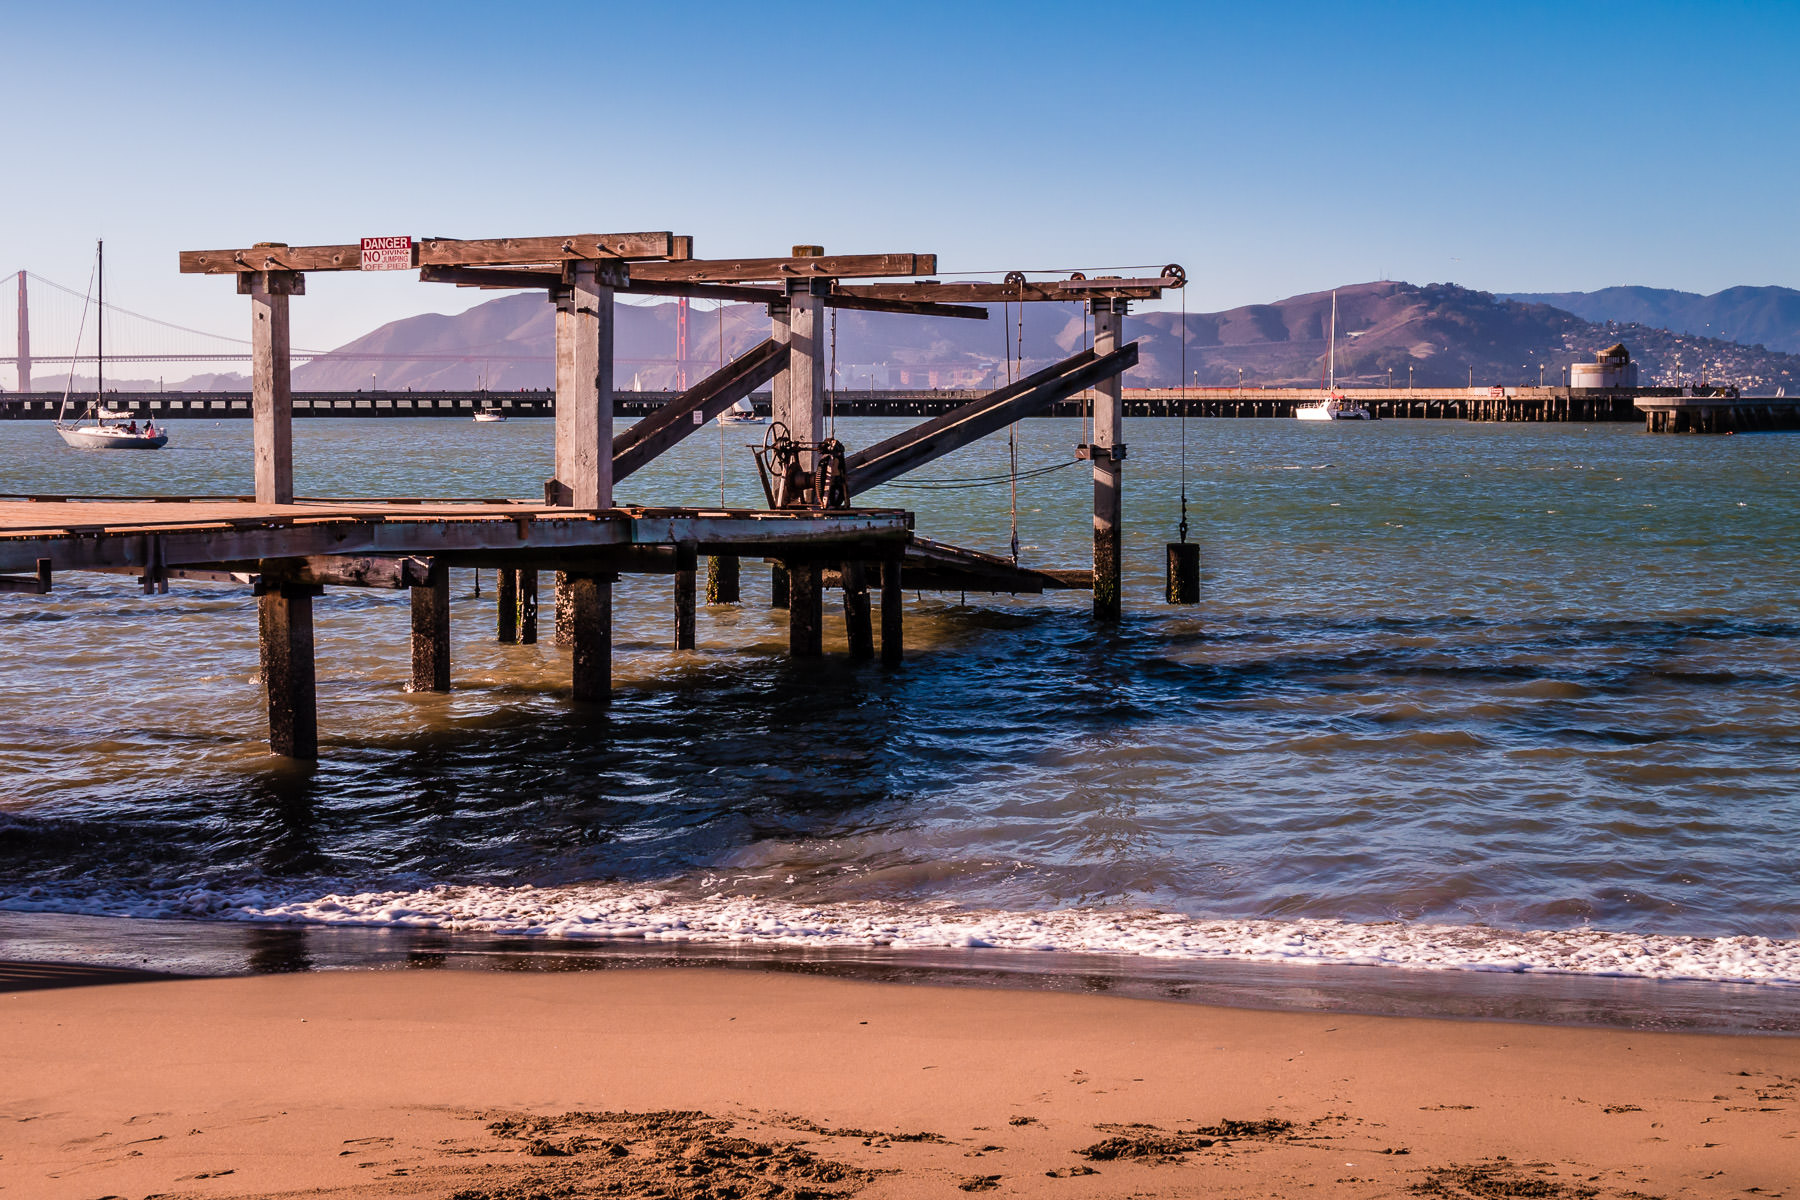 An adjustable pier reaches in the waters of San Francisco's Aquatic Park.